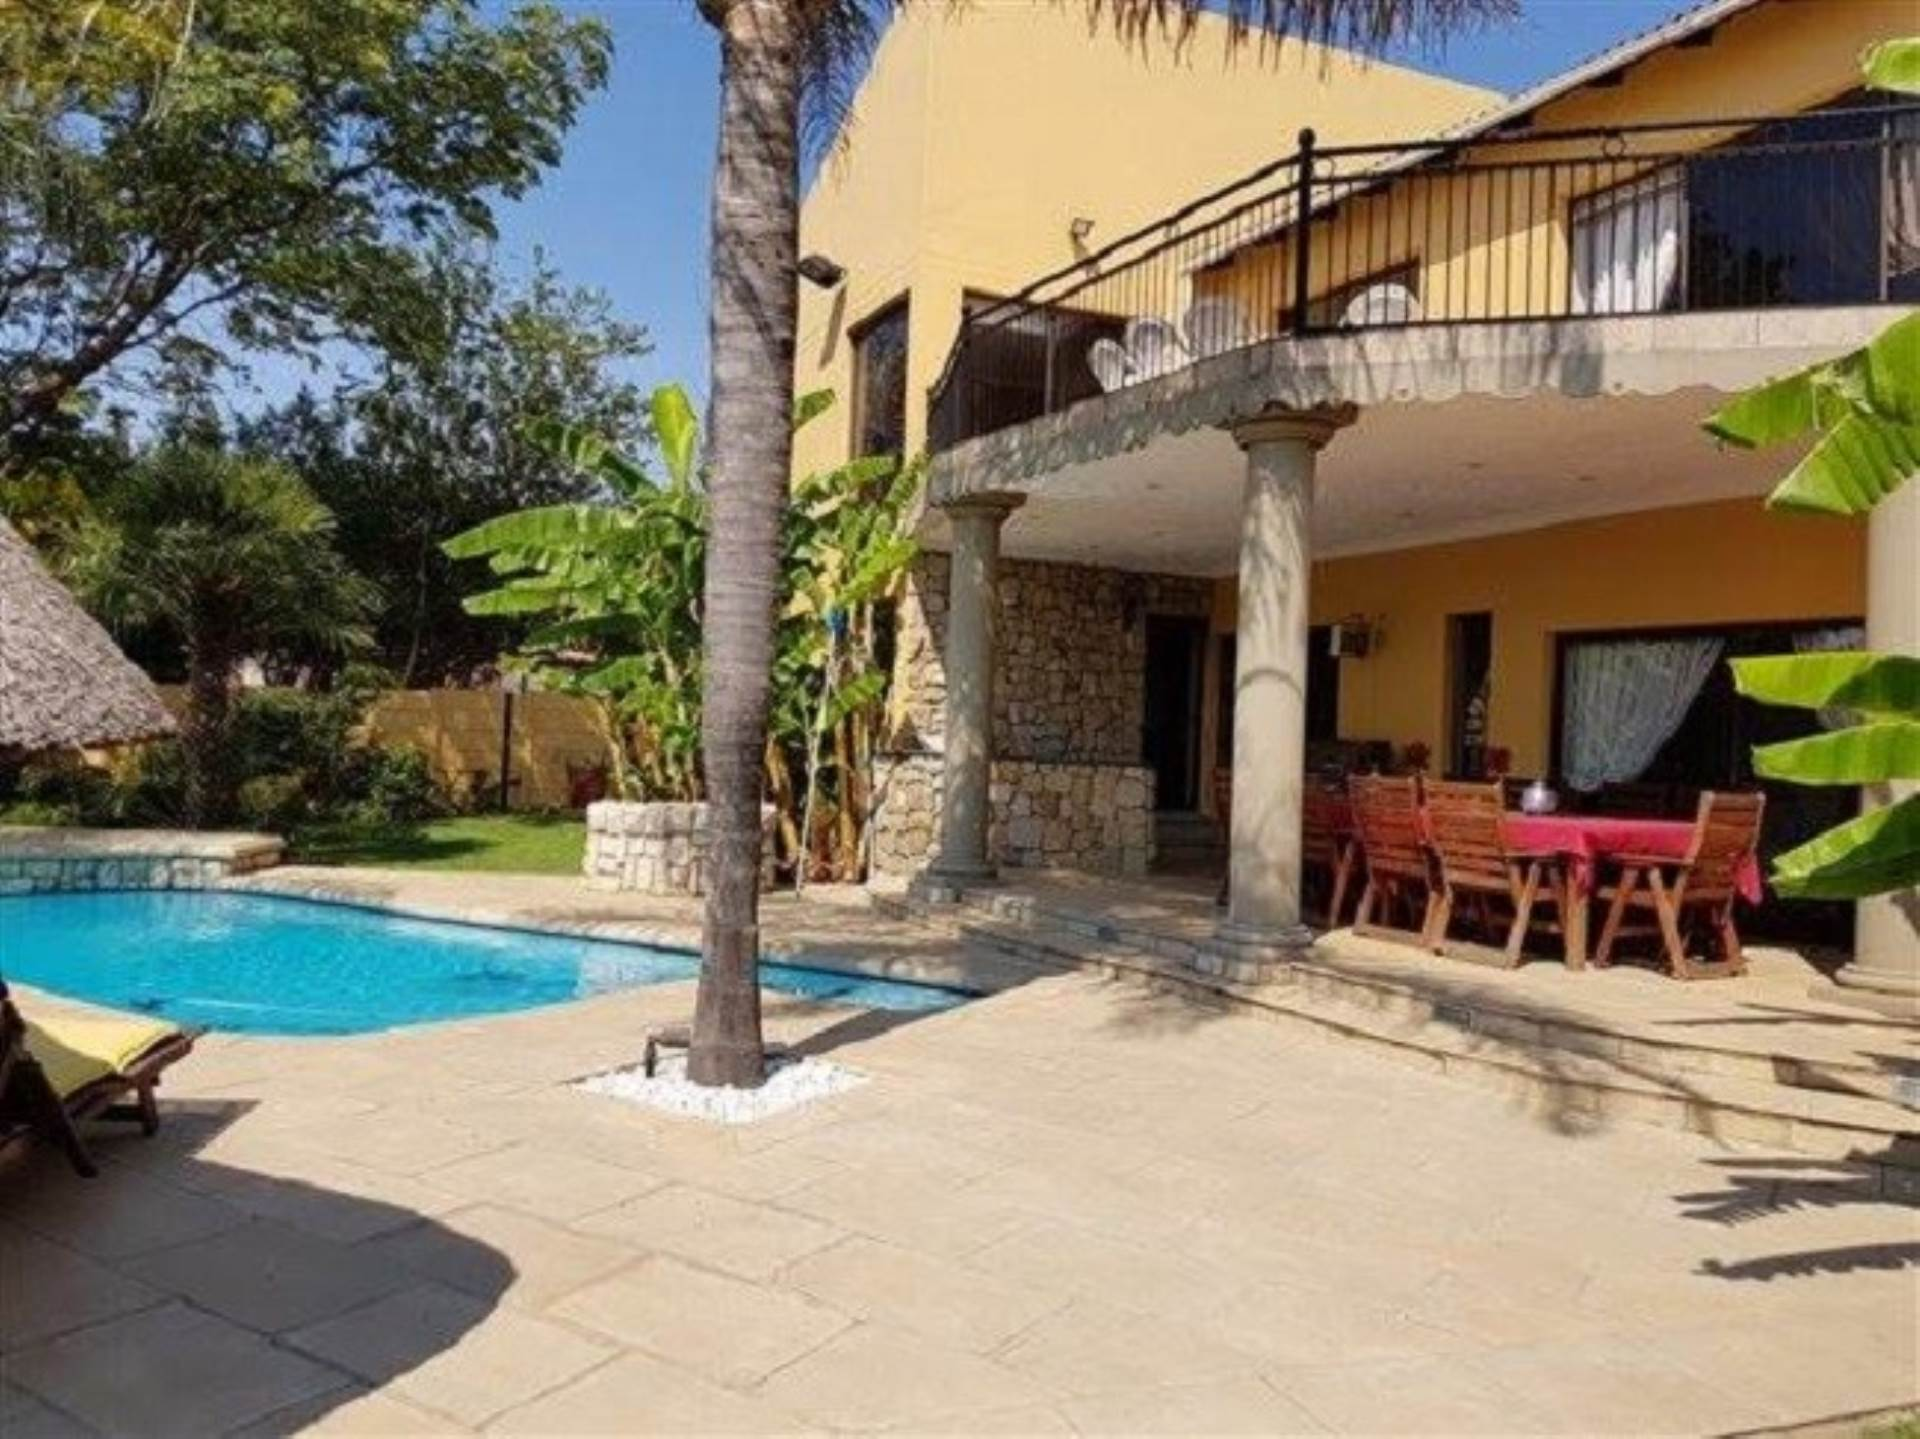 5 BedroomHouse For Sale In Dalpark